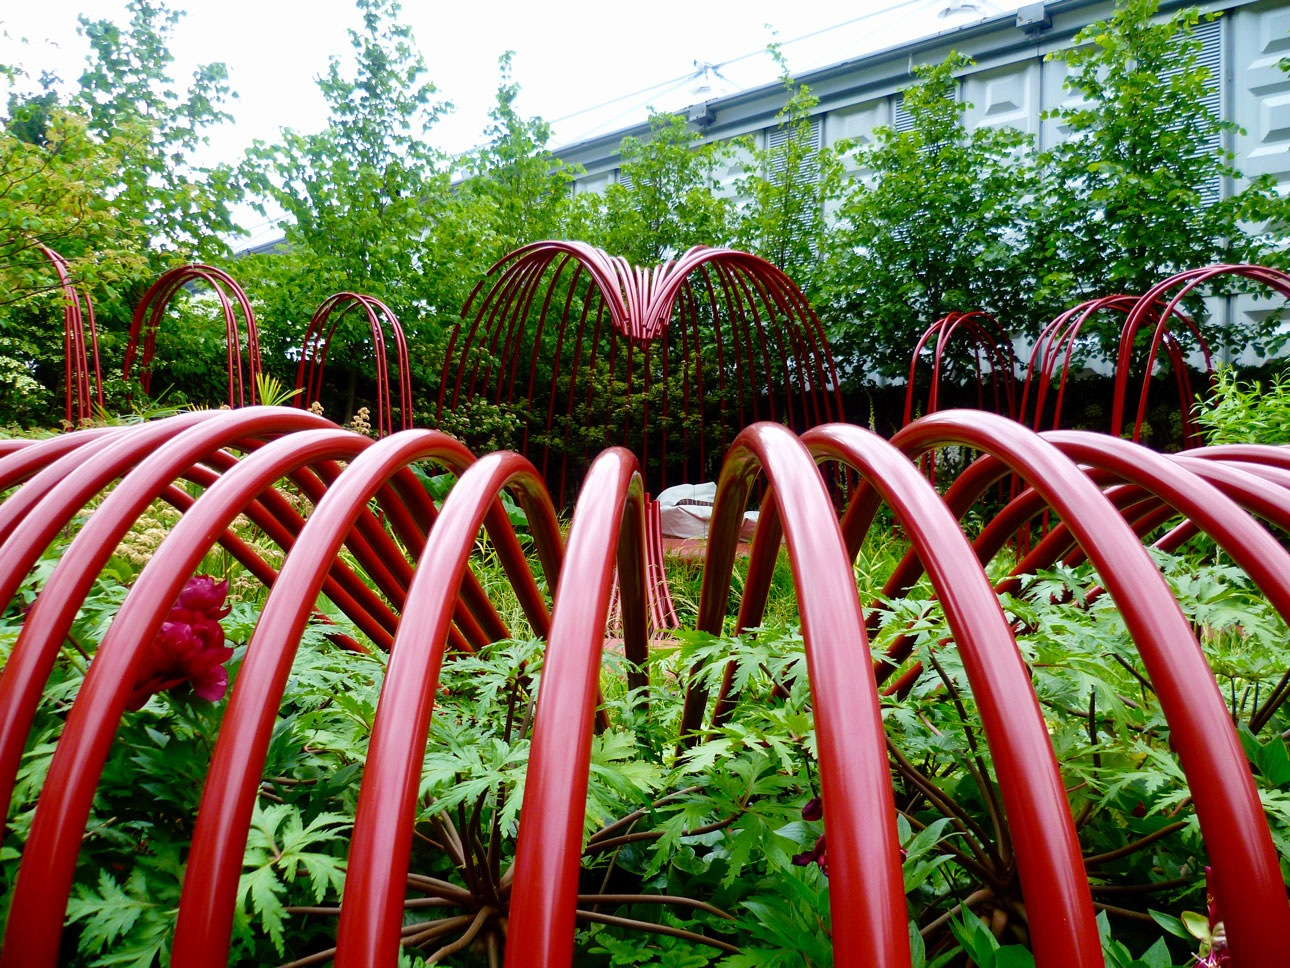 Chelsea flower show new garden design by Ann-Marie Powell with green perennials under arching structures